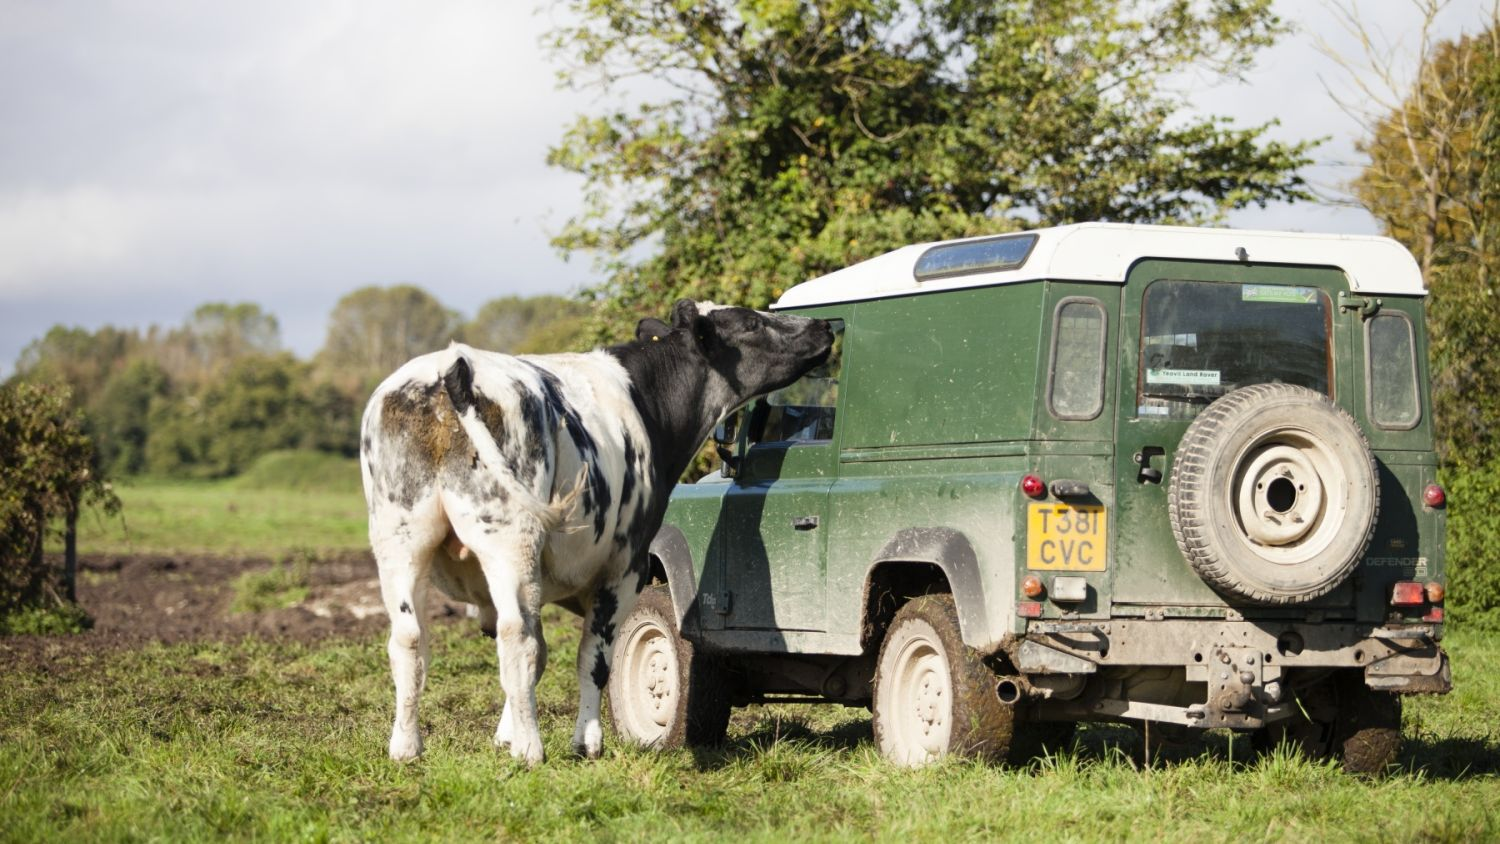 Cow land rover